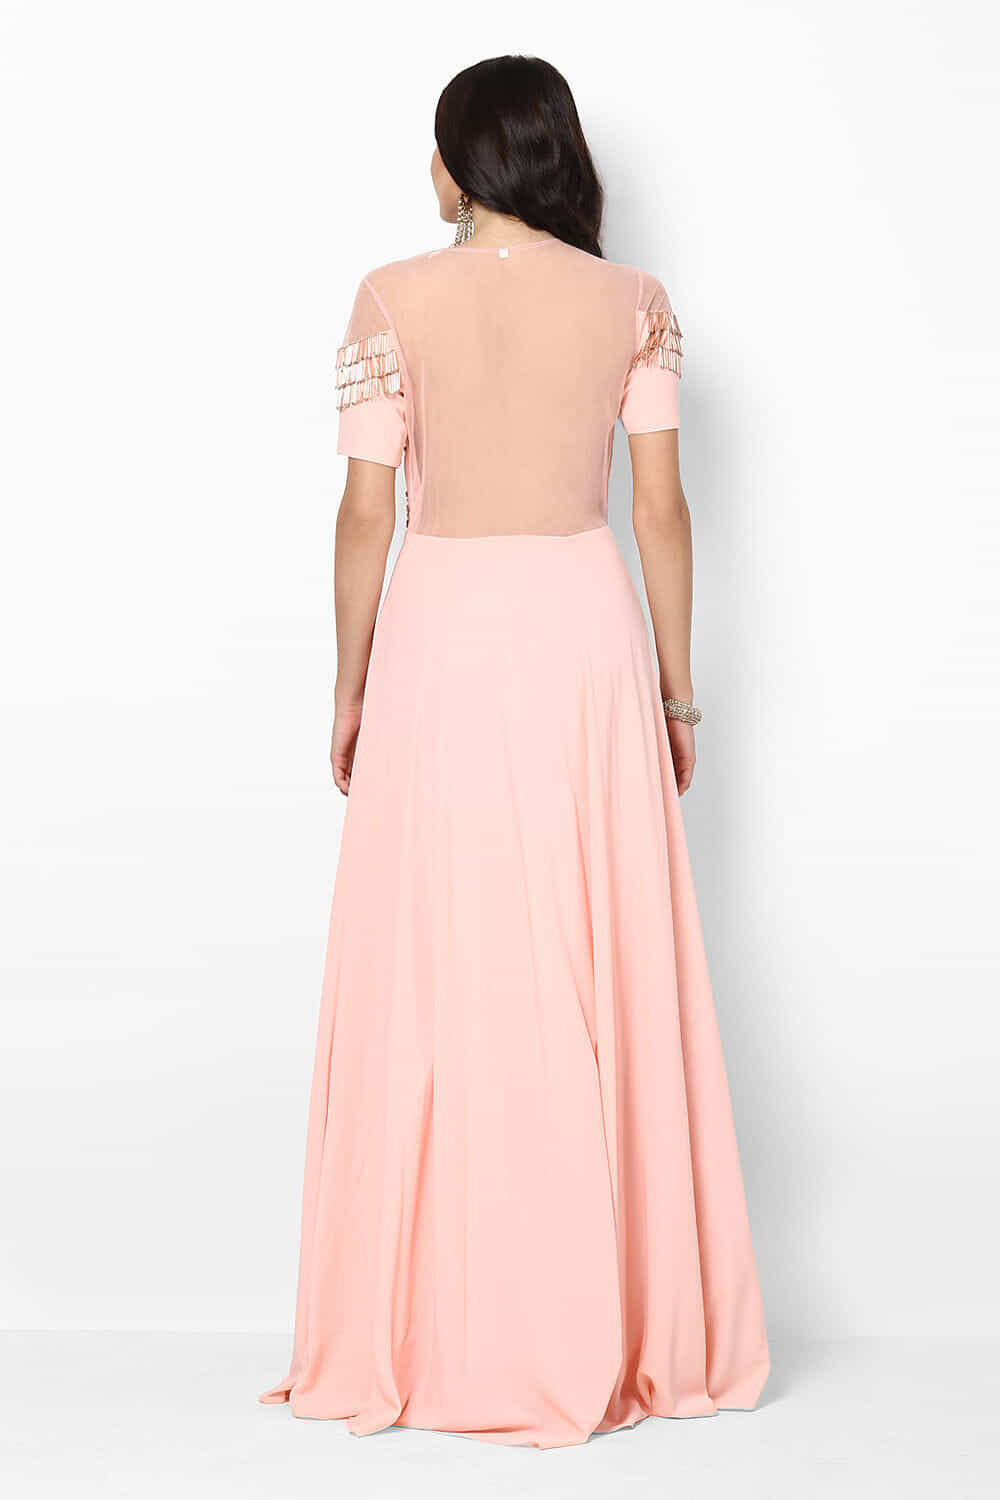 Rent AZRA - Peach Tassle Gown